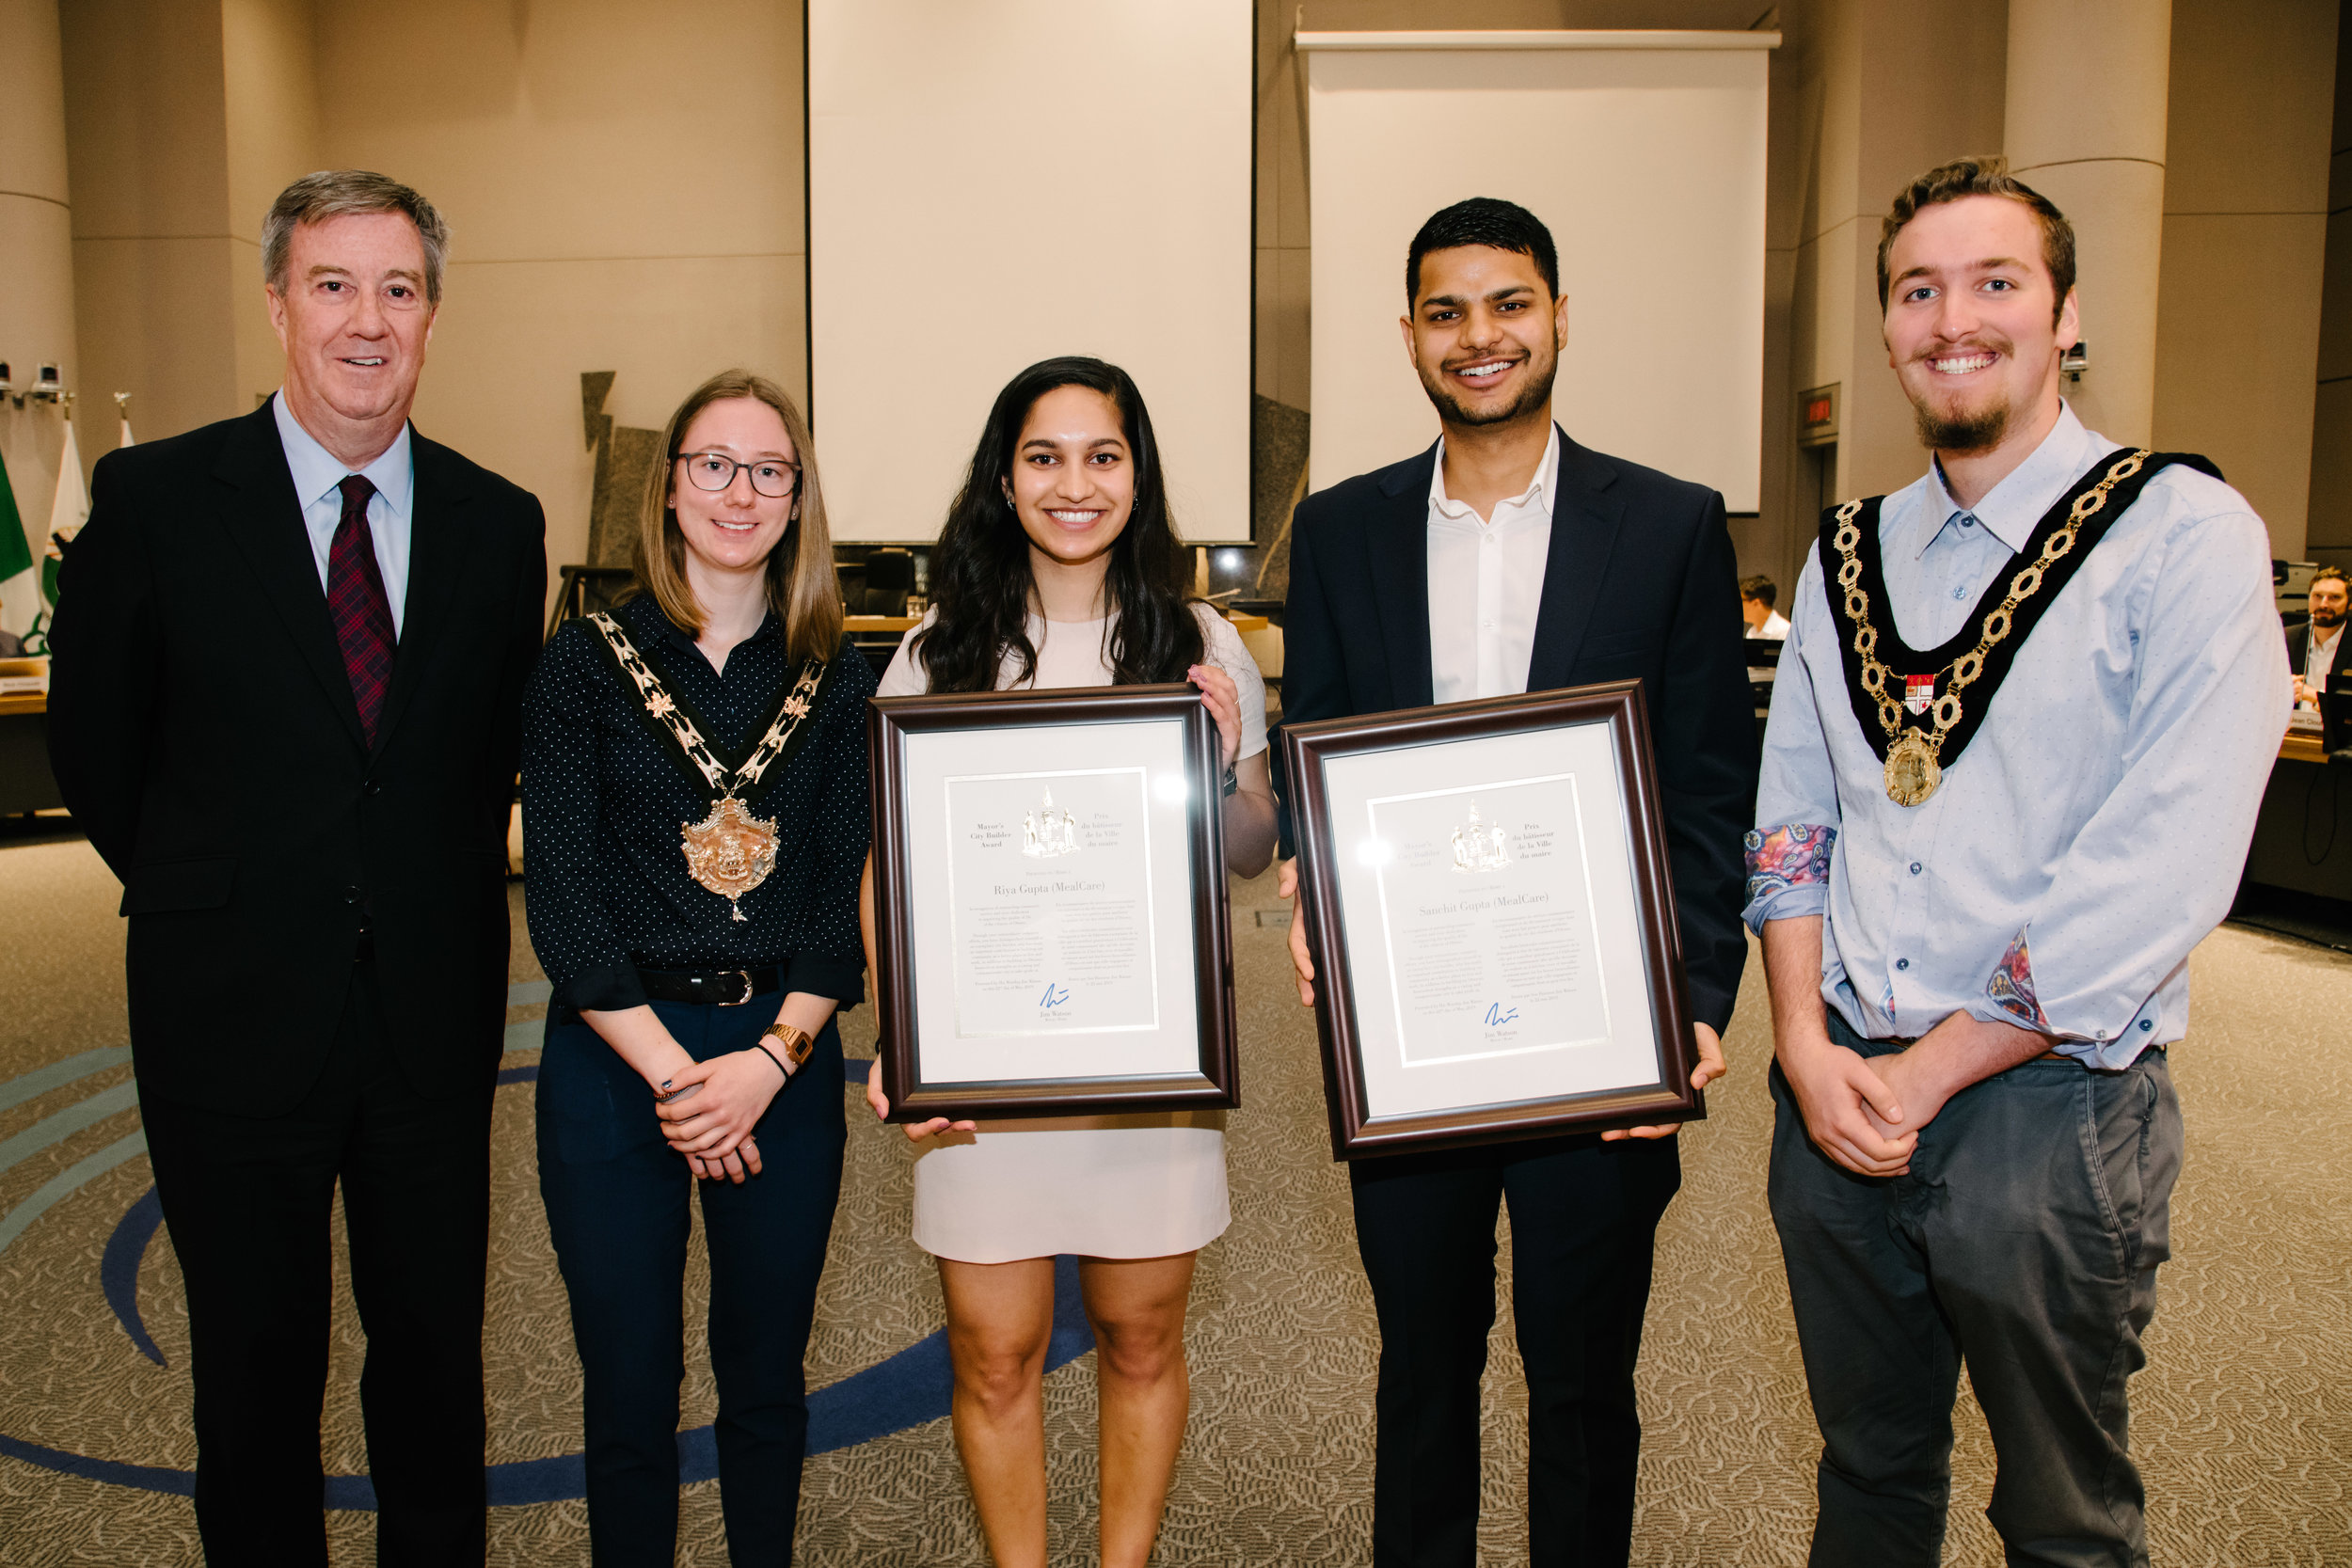 Congratulations to Rideau-Goulbourn residents Sanchit and Riya Gupta on receiving the Mayor's City Builder Award at Council on Wednesday, May 22. The Guptas established a chapter of MealCare, a non-profit organization that aims to combat food waste, in Ottawa. Working with local restaurants, university cafeterias and grocery stores, the Guptas take in surplus food, and, with the help of fellow volunteers, redirect it to shelters and soup kitchens where it is needed most.